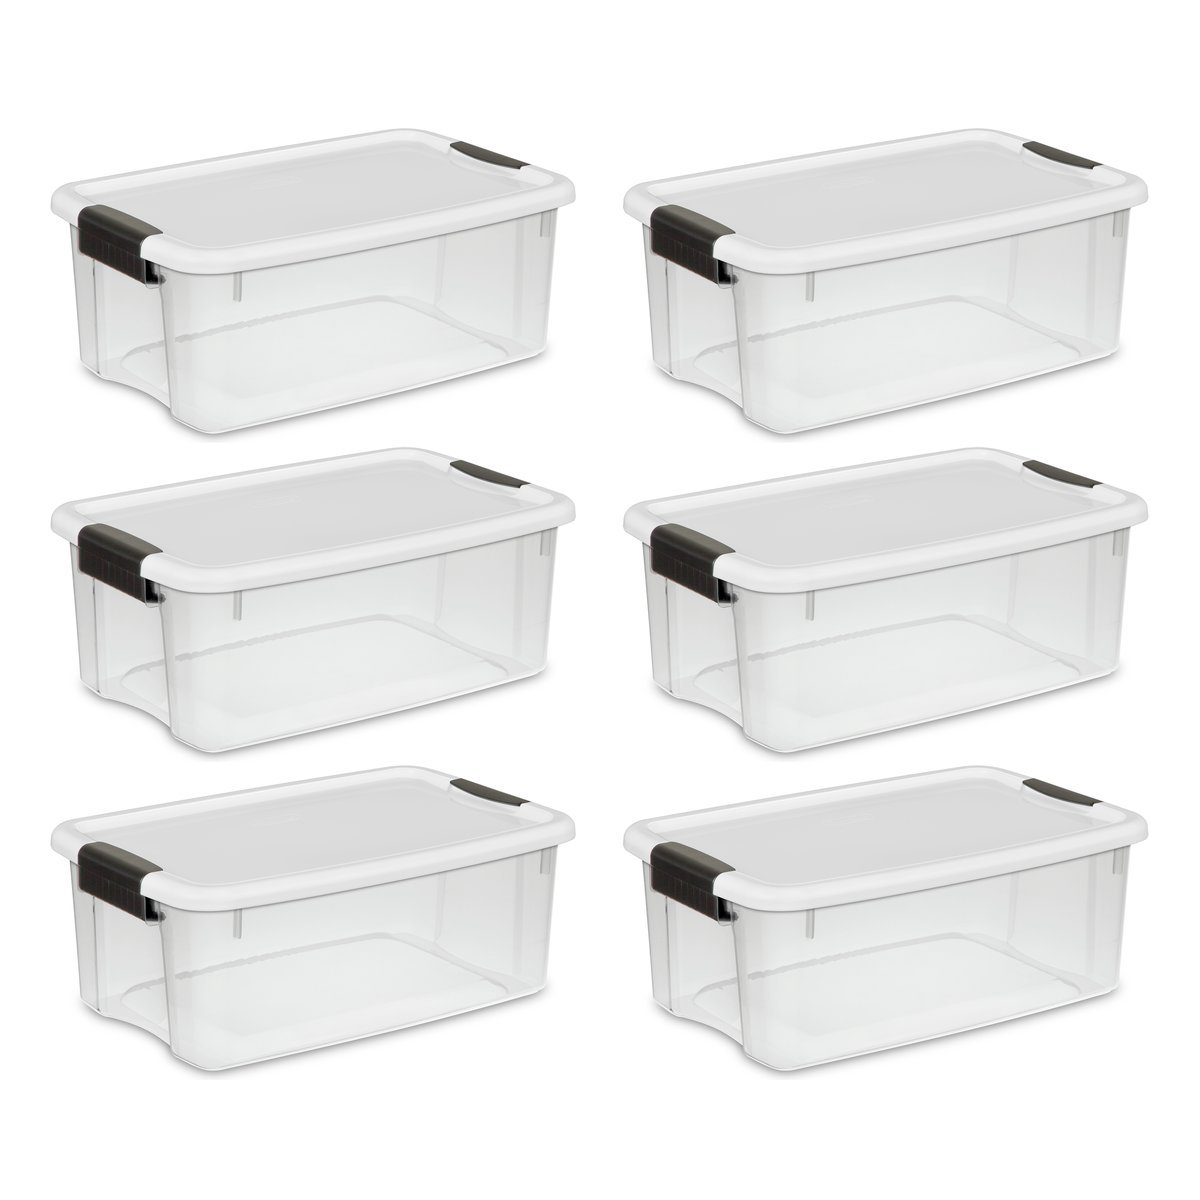 Sterilite 19849806 18 Quart/17 Liter Ultra Latch Box, Clear with a White Lid and Black Latches, 6-Pack by STERILITE